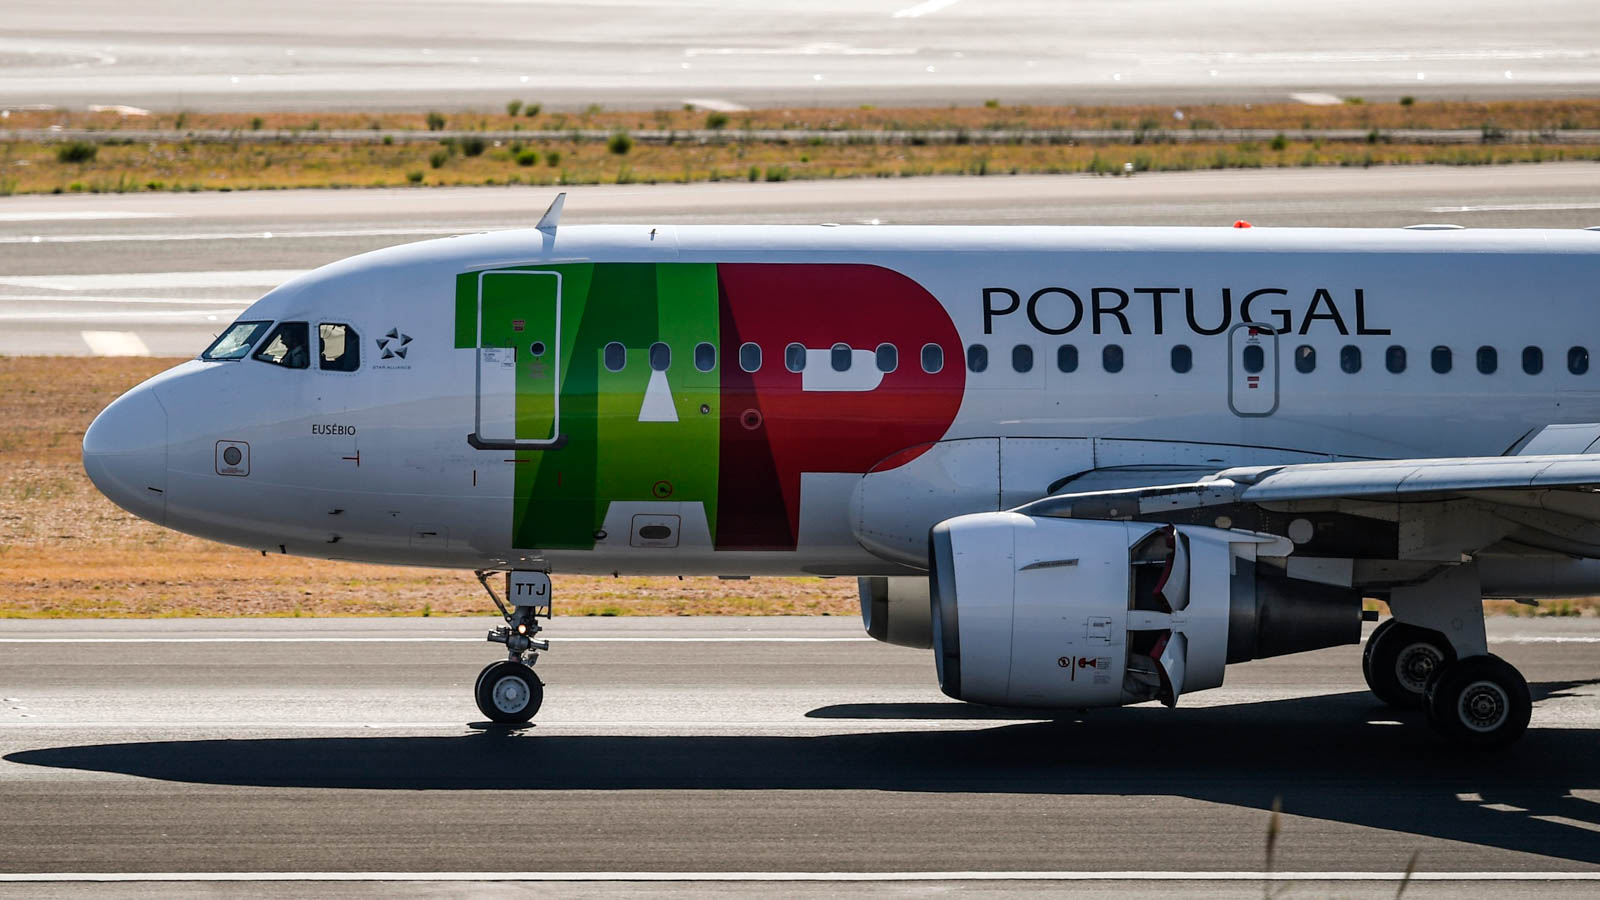 A plane of Portuguese airline TAP at Humberto Delgado airport in Lisbon on October 3, 2018.